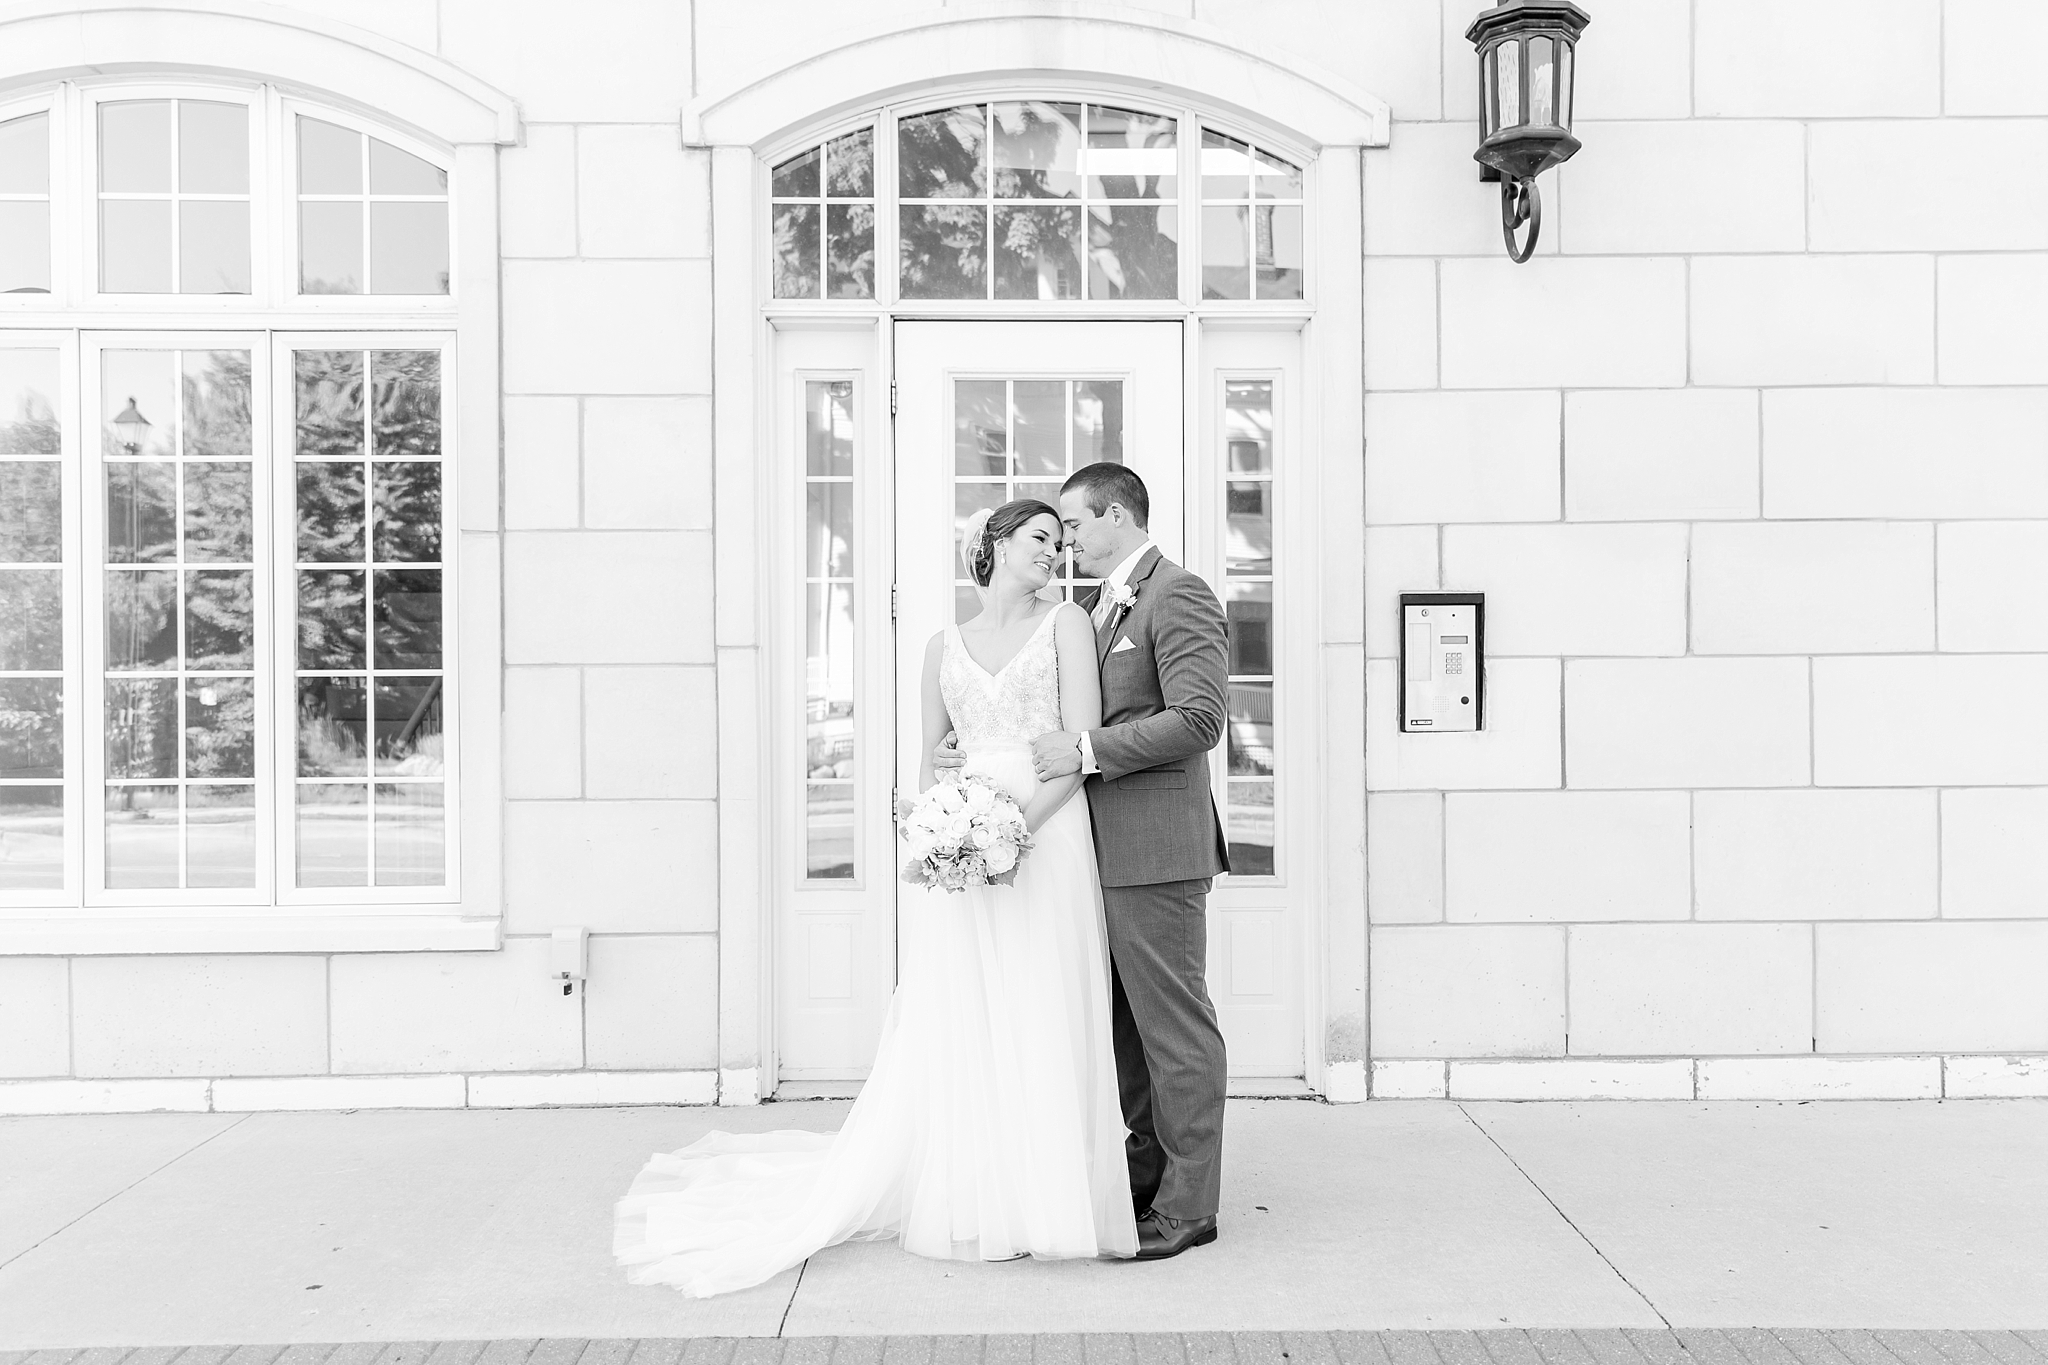 classic-intimate-fun-wedding-photos-at-the-meeting-house-grand-ballroom-in-plymouth-michigan-by-courtney-carolyn-photography_0069.jpg